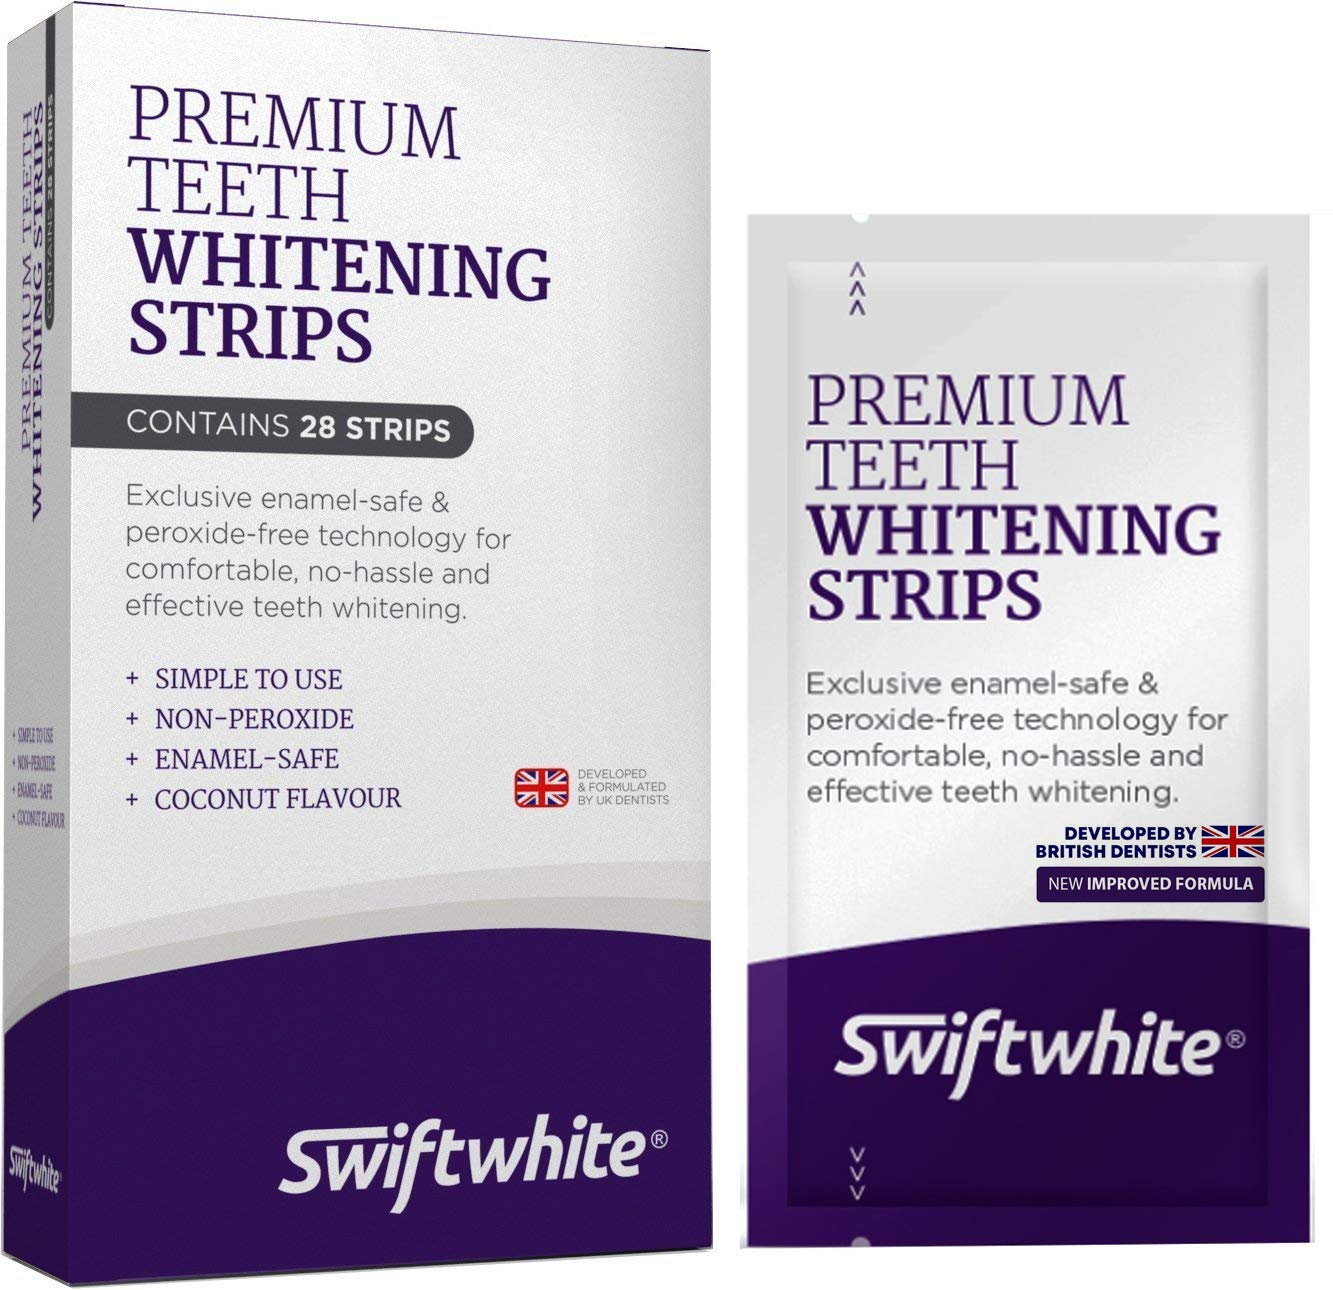 Teeth Whitening Strips, Fast Results & No Sensitivity, Superior Than Crest 3D Whitestrips and HiSmile Teeth Whitening Kits, 100% Money Back (1-Pack) product image